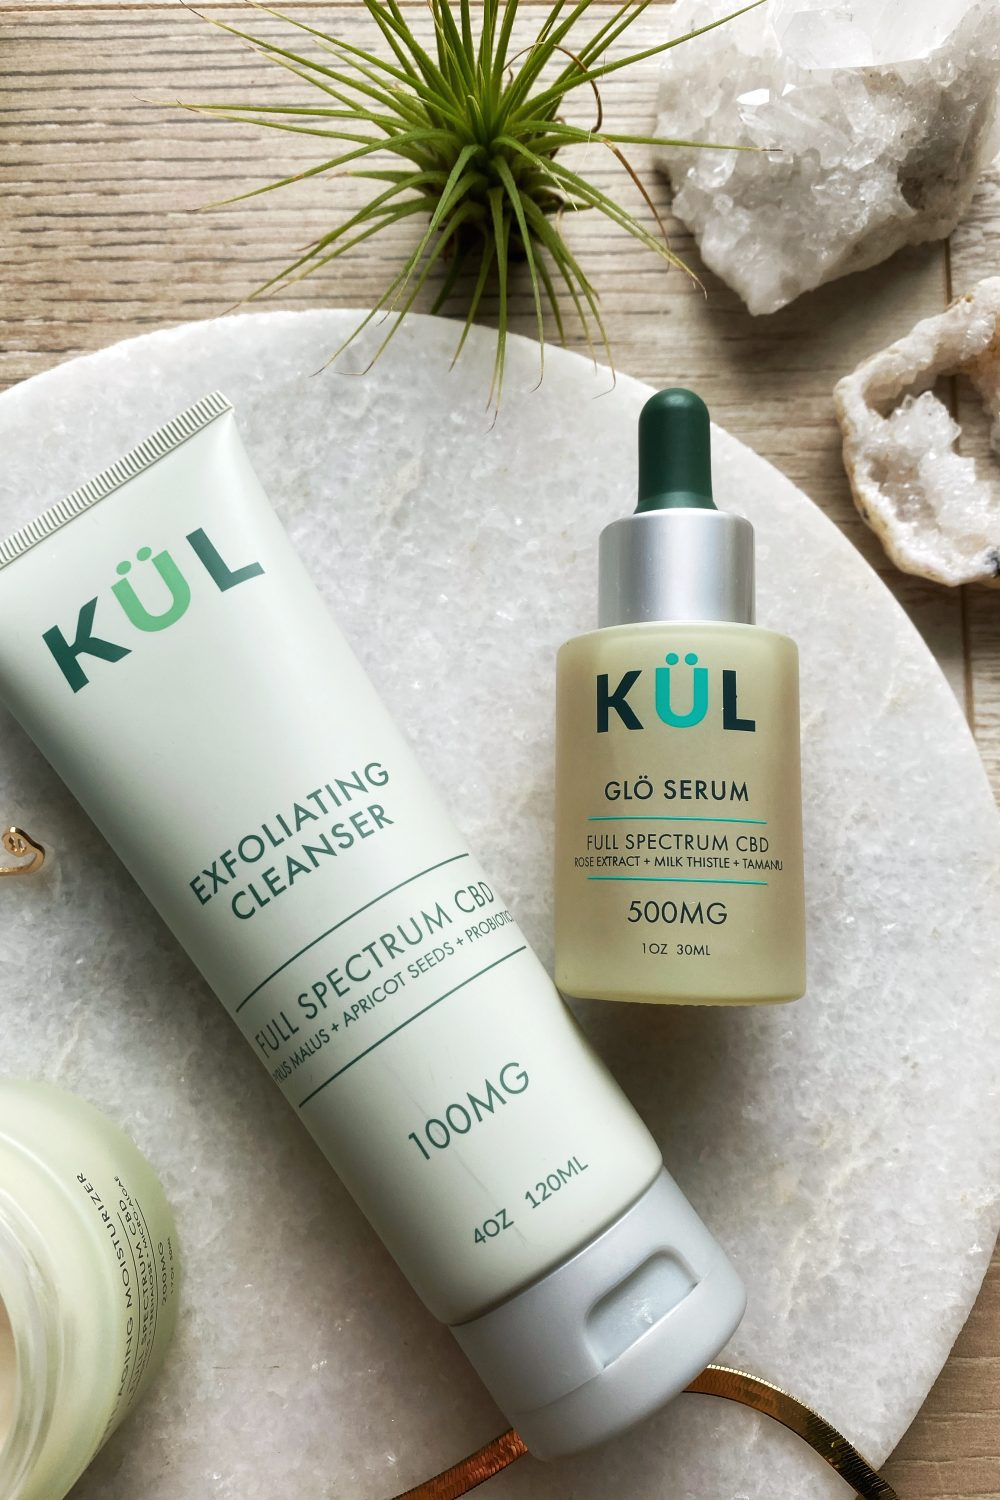 CBD Skincare serum and exfoliator